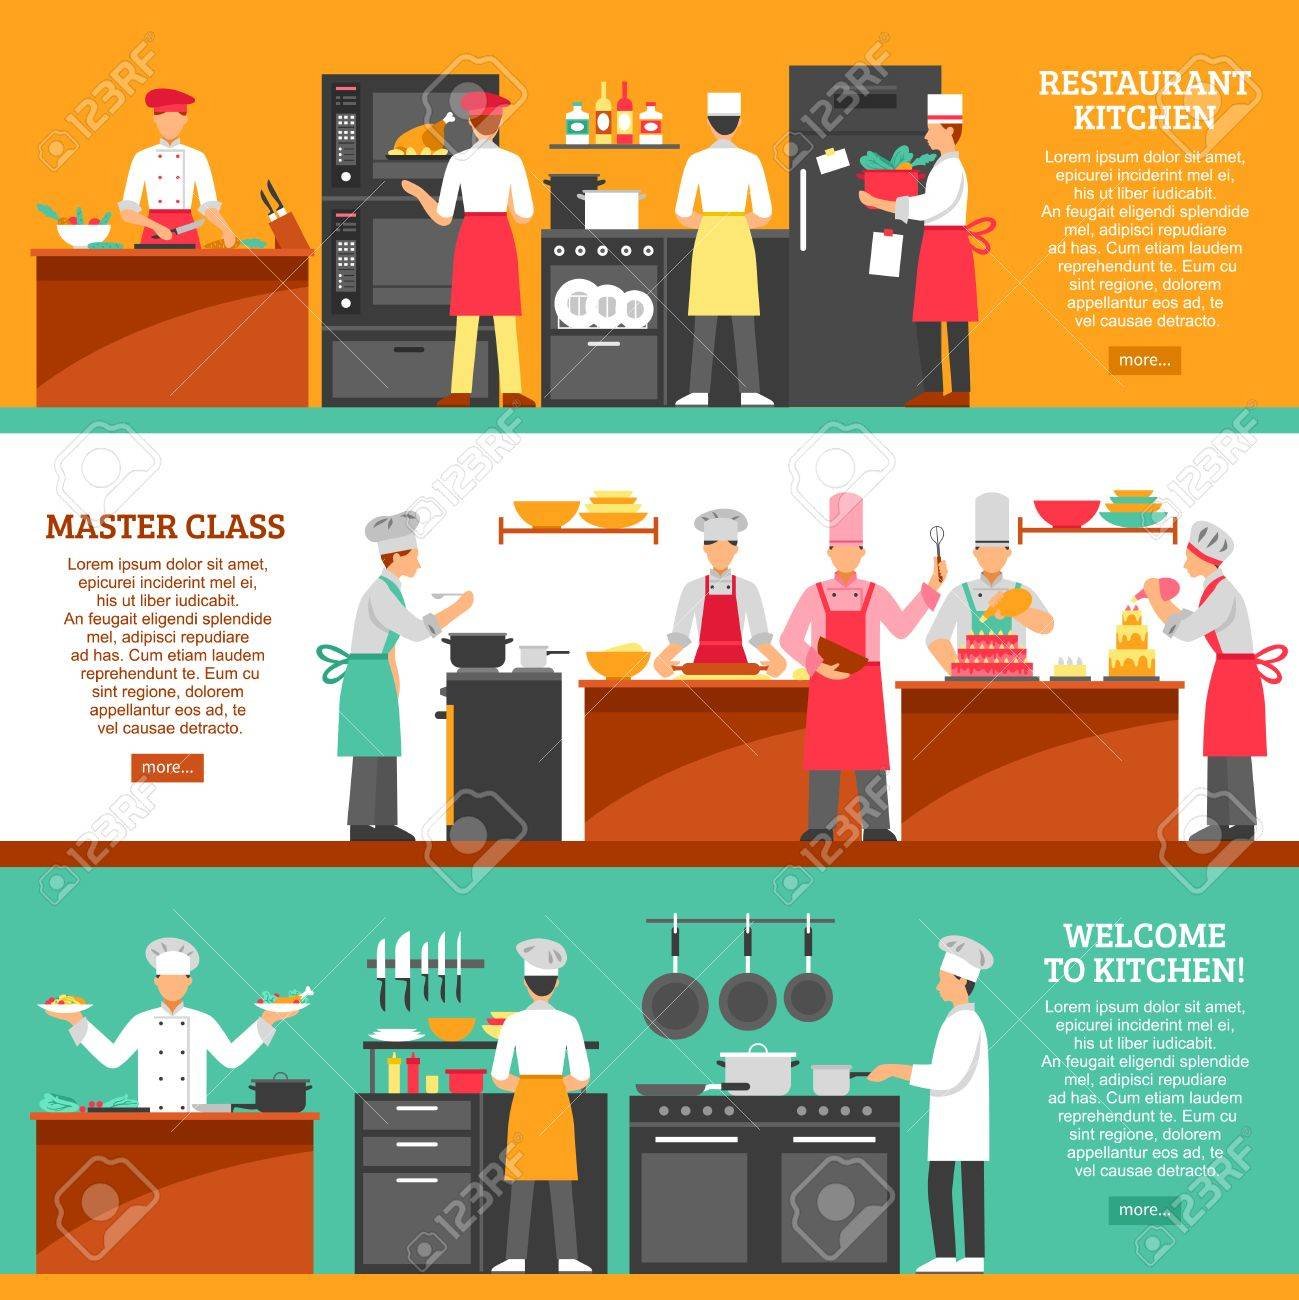 Restaurant Kitchen Illustration professional cooking horizontal banners set with restaurant